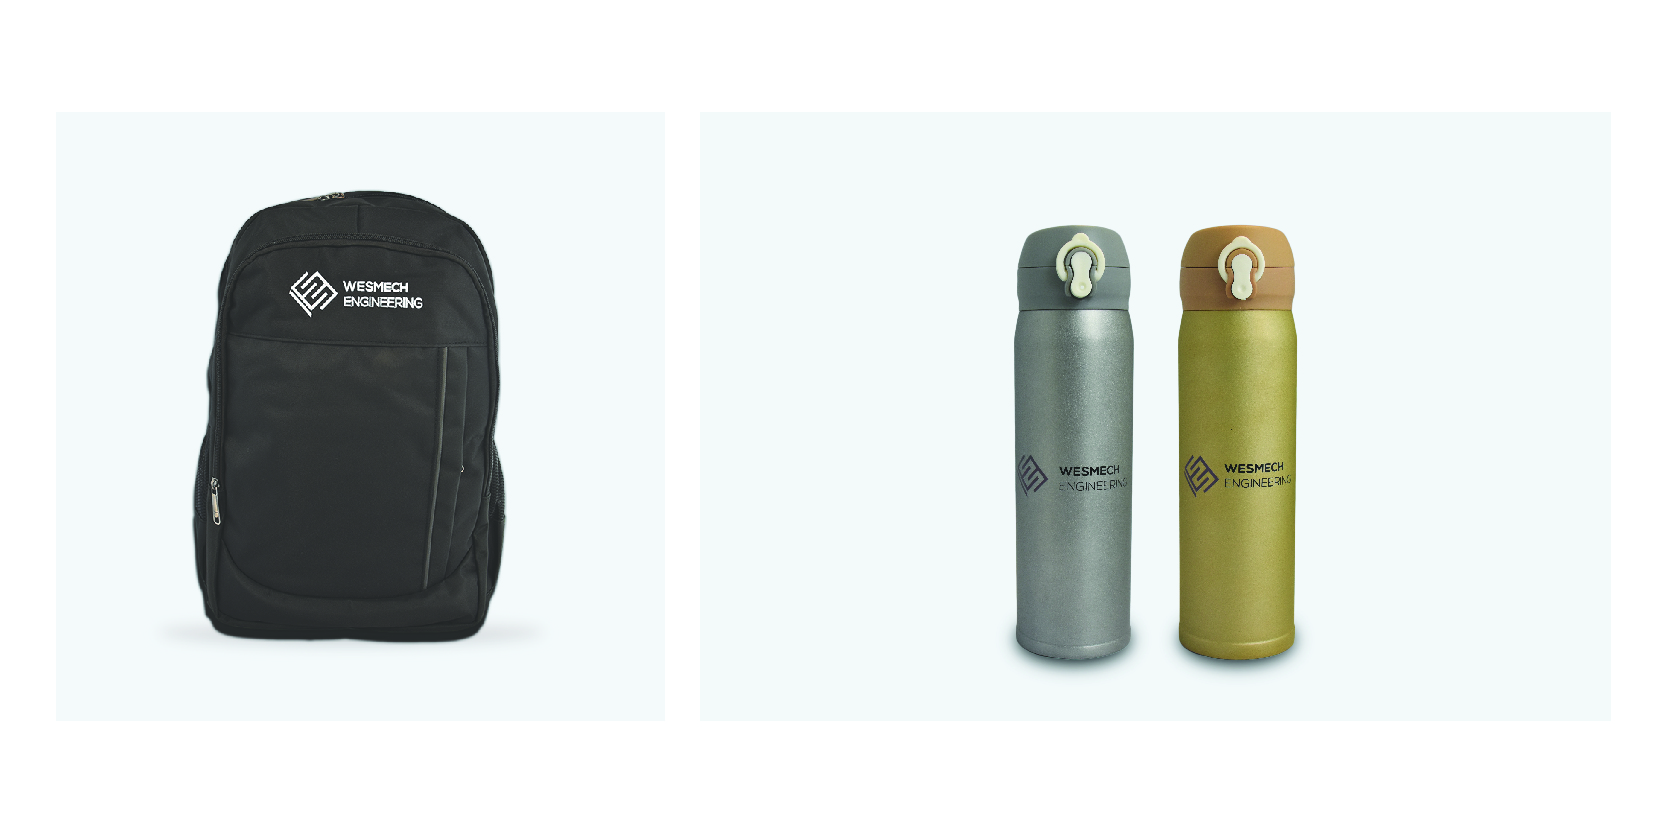 wesmech brand collaterals which show a bag and water bottles bearing the new brand logo